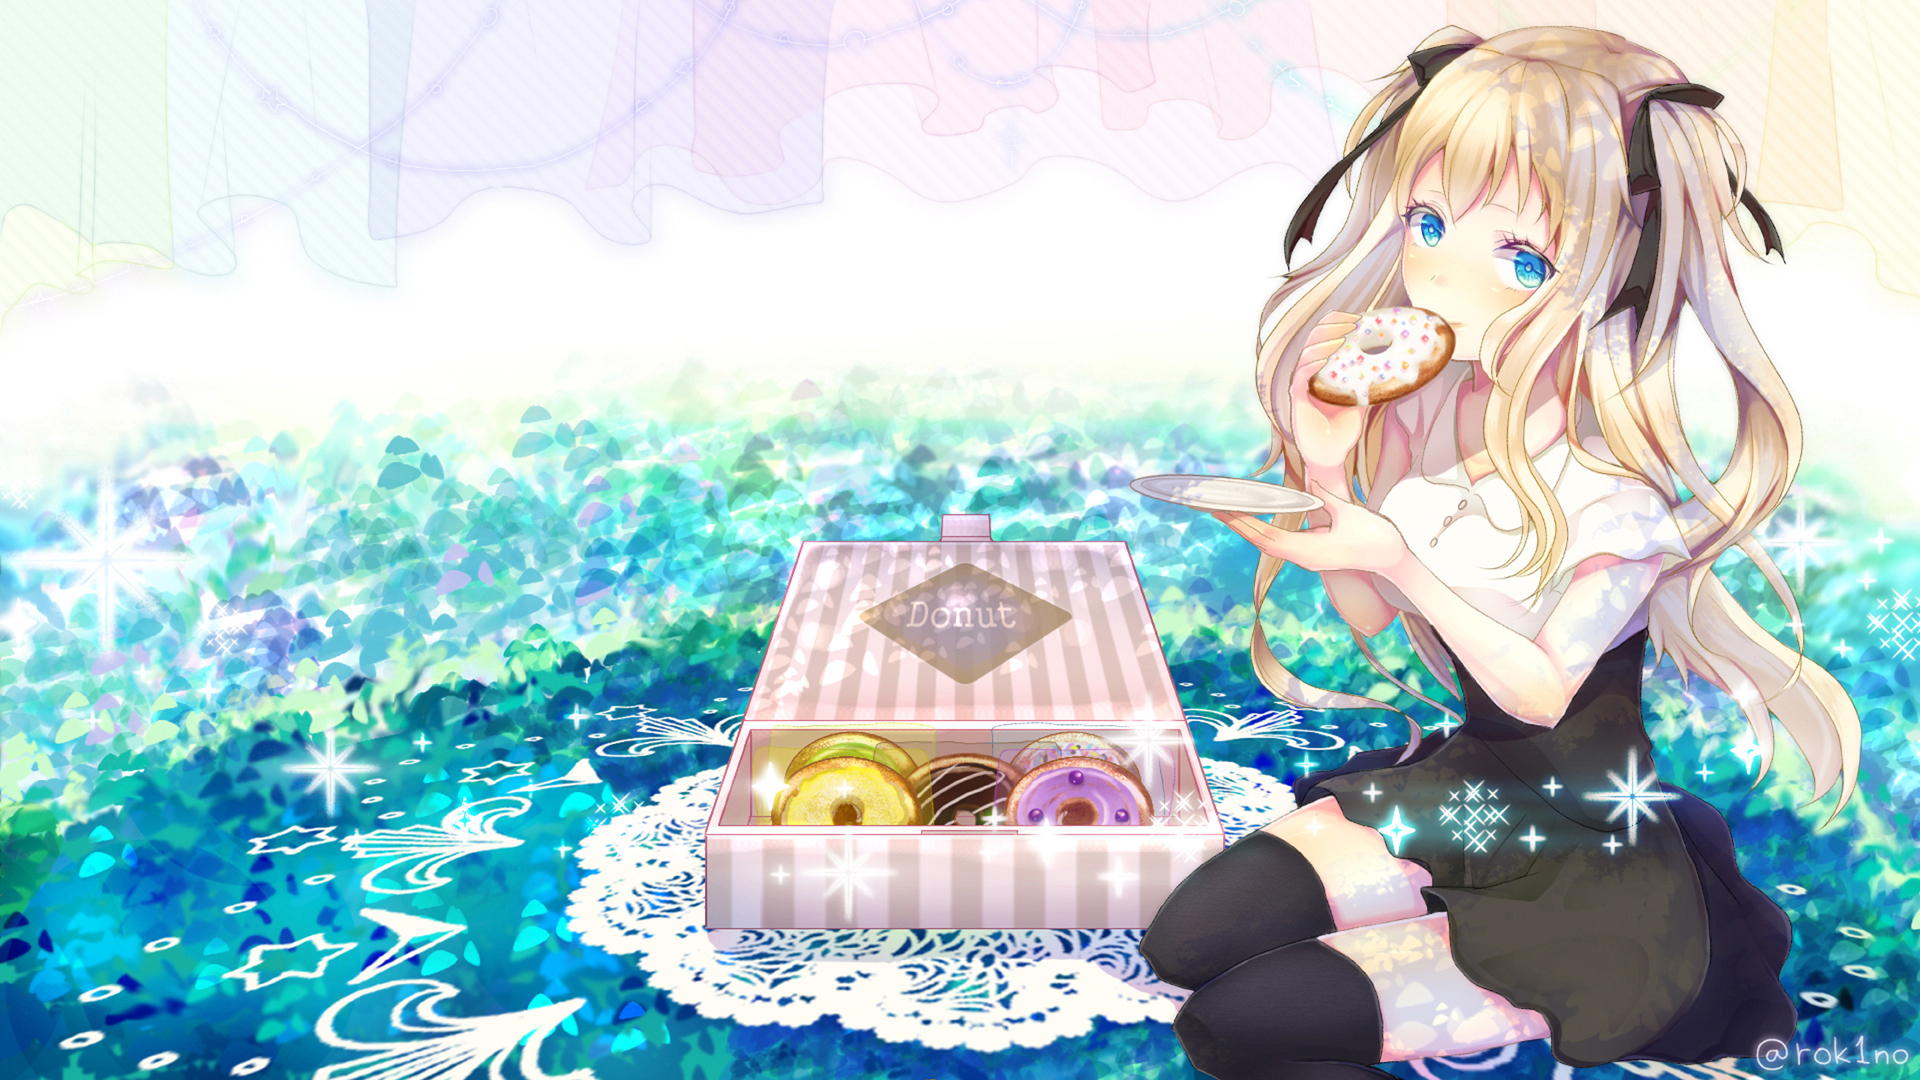 Anime gallery site web 32 Size Bra Pictures - Alibaba